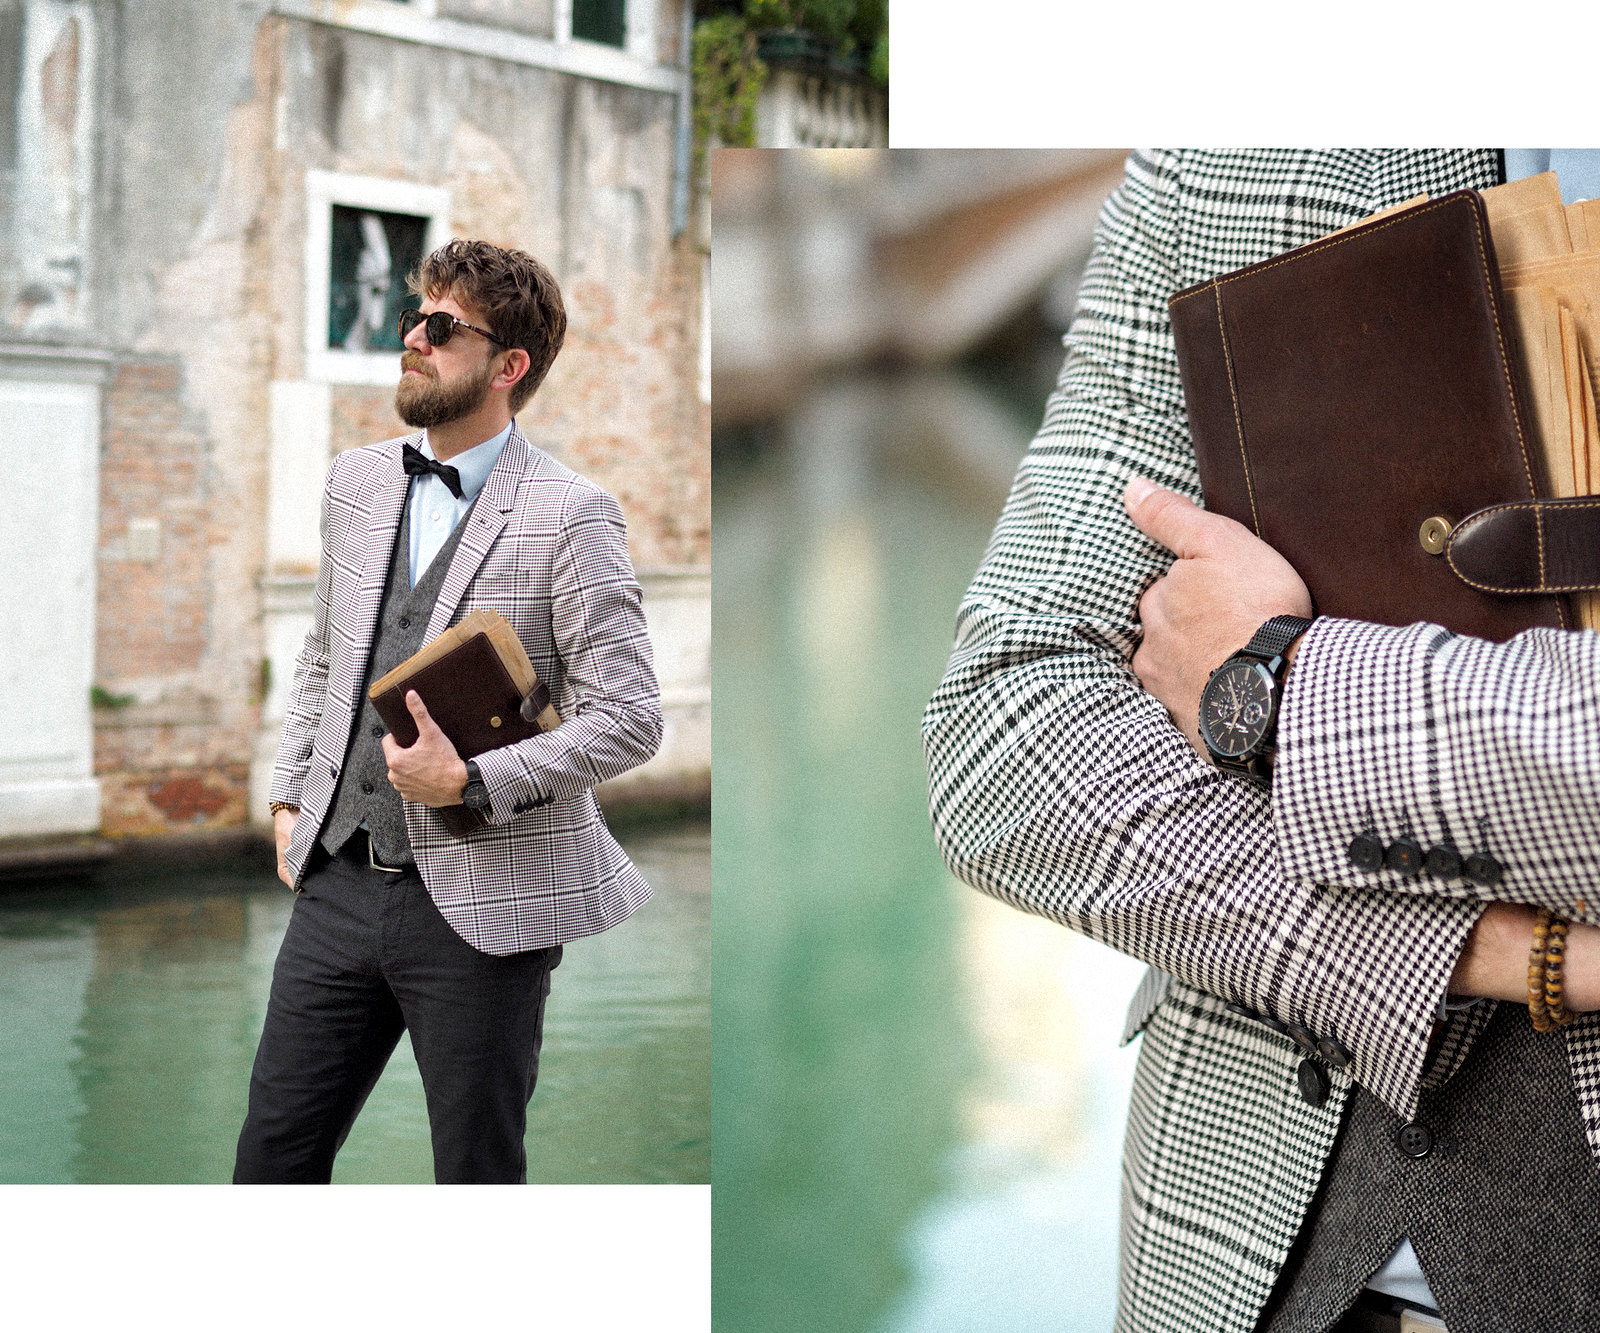 outfit professor glen check blazer autumn trend persol sunglasses intellectual style uni university prof sacha shoes bow tie elegant dandy style indiana jones venice look cats & dogs blog max bechmann 4